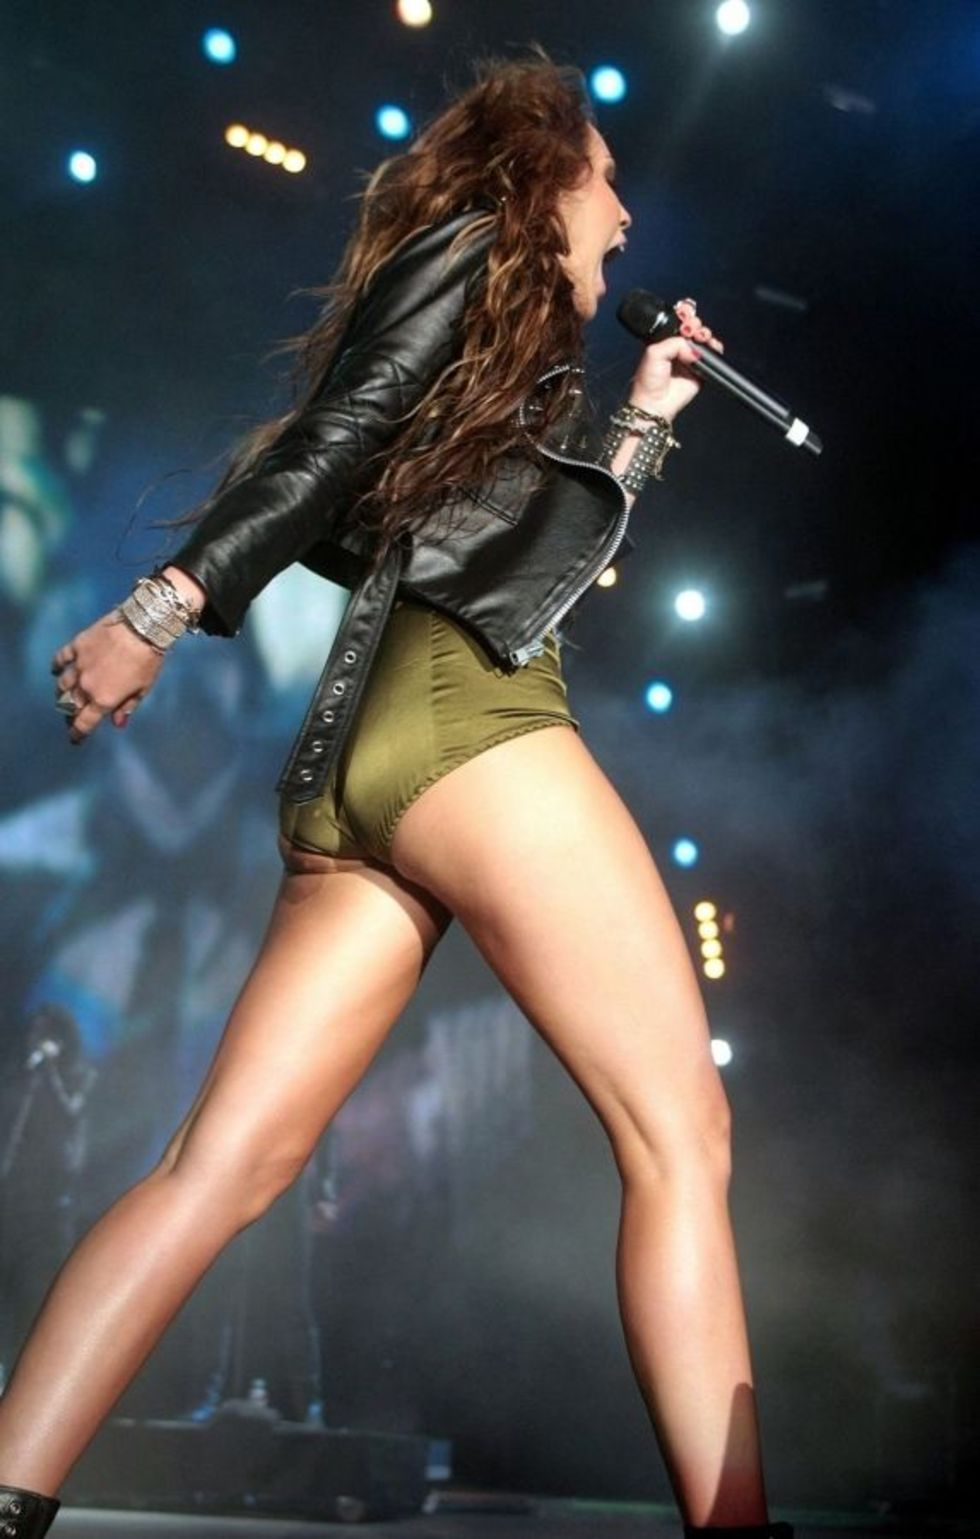 Miley Cyrus - Fotos , videos y canciones de miley Cyrus